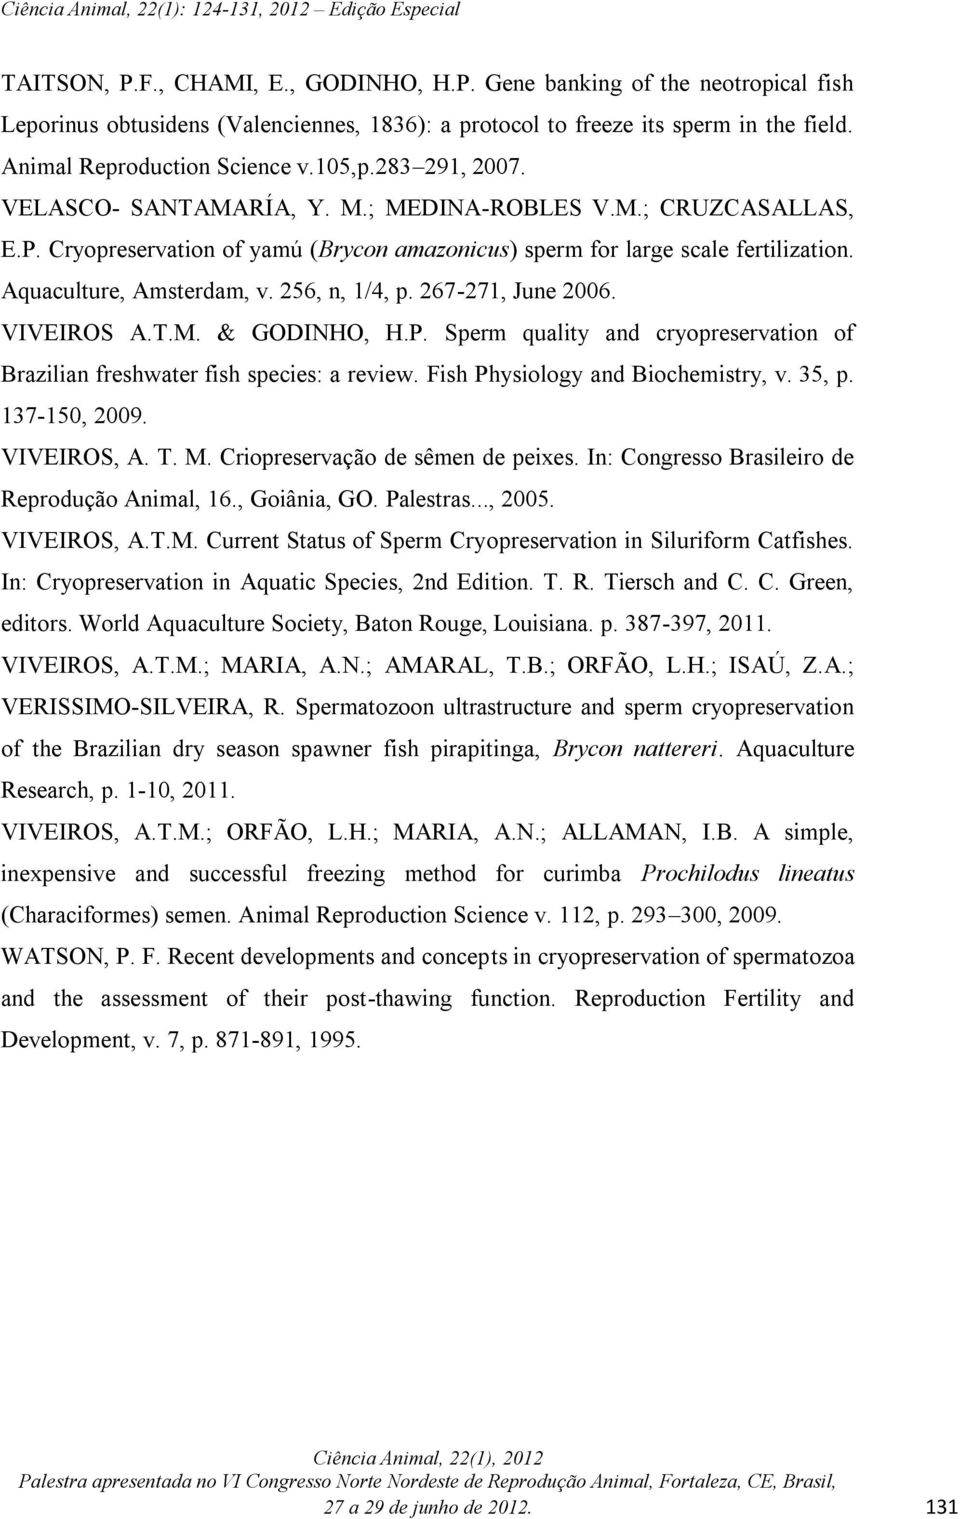 256, n, 1/4, p. 267-271, June 2006. VIVEIROS A.T.M. & GODINHO, H.P. Sperm quality and cryopreservation of Brazilian freshwater fish species: a review. Fish Physiology and Biochemistry, v. 35, p.